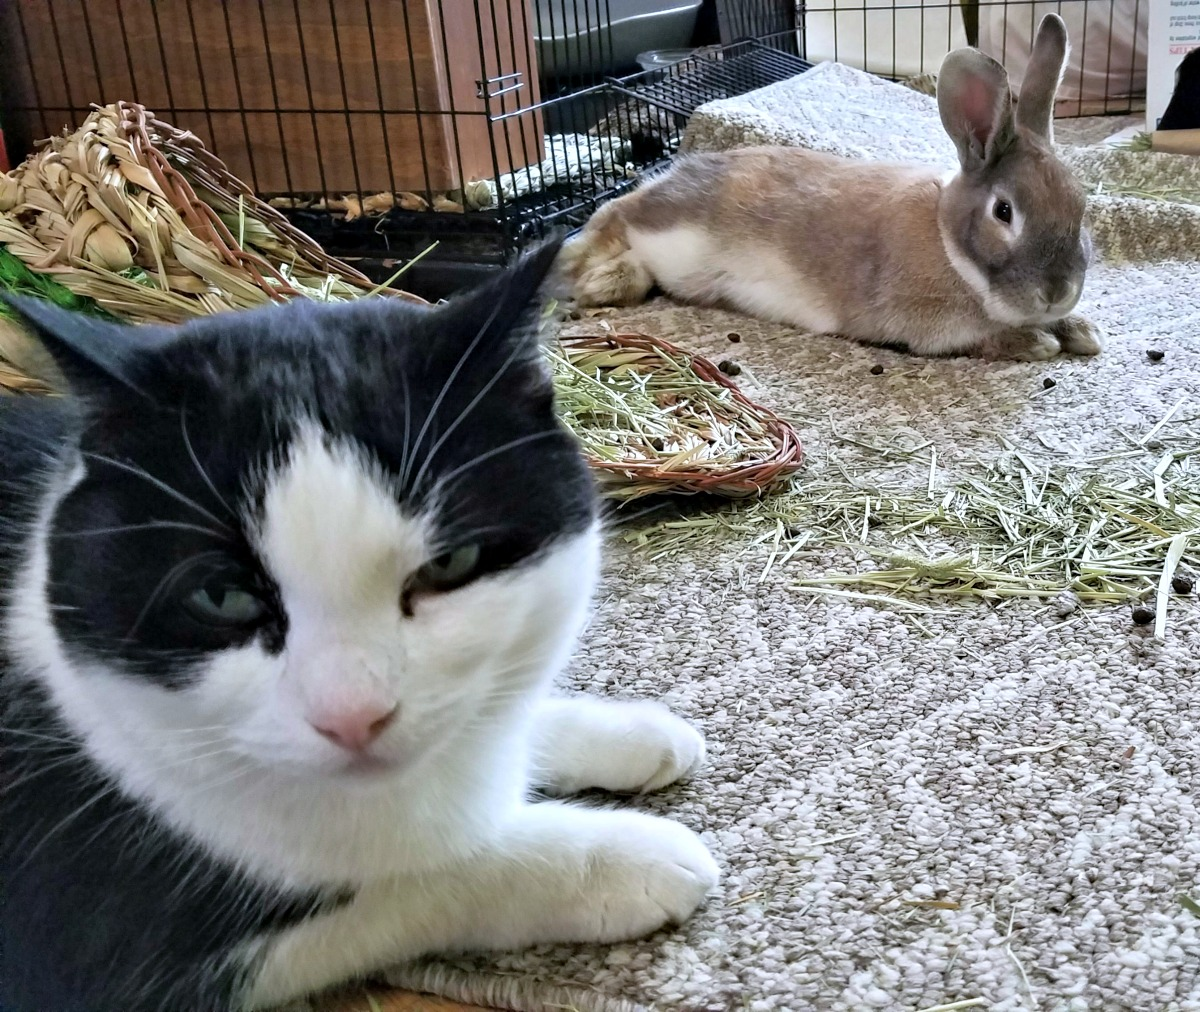 introducing rabbit to cats, rescue rabbit